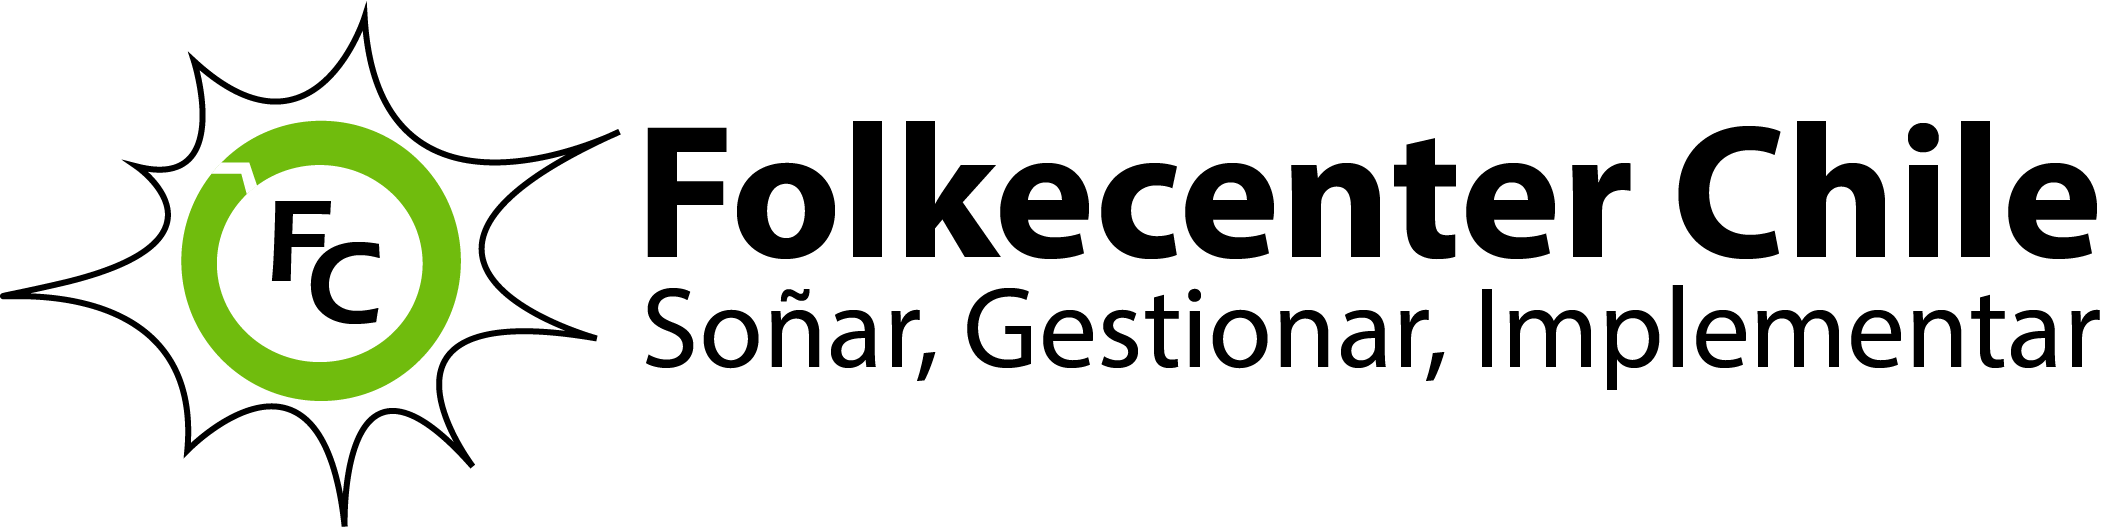 Folkecenter Chile LOGO GRANDE HORIZONTAL